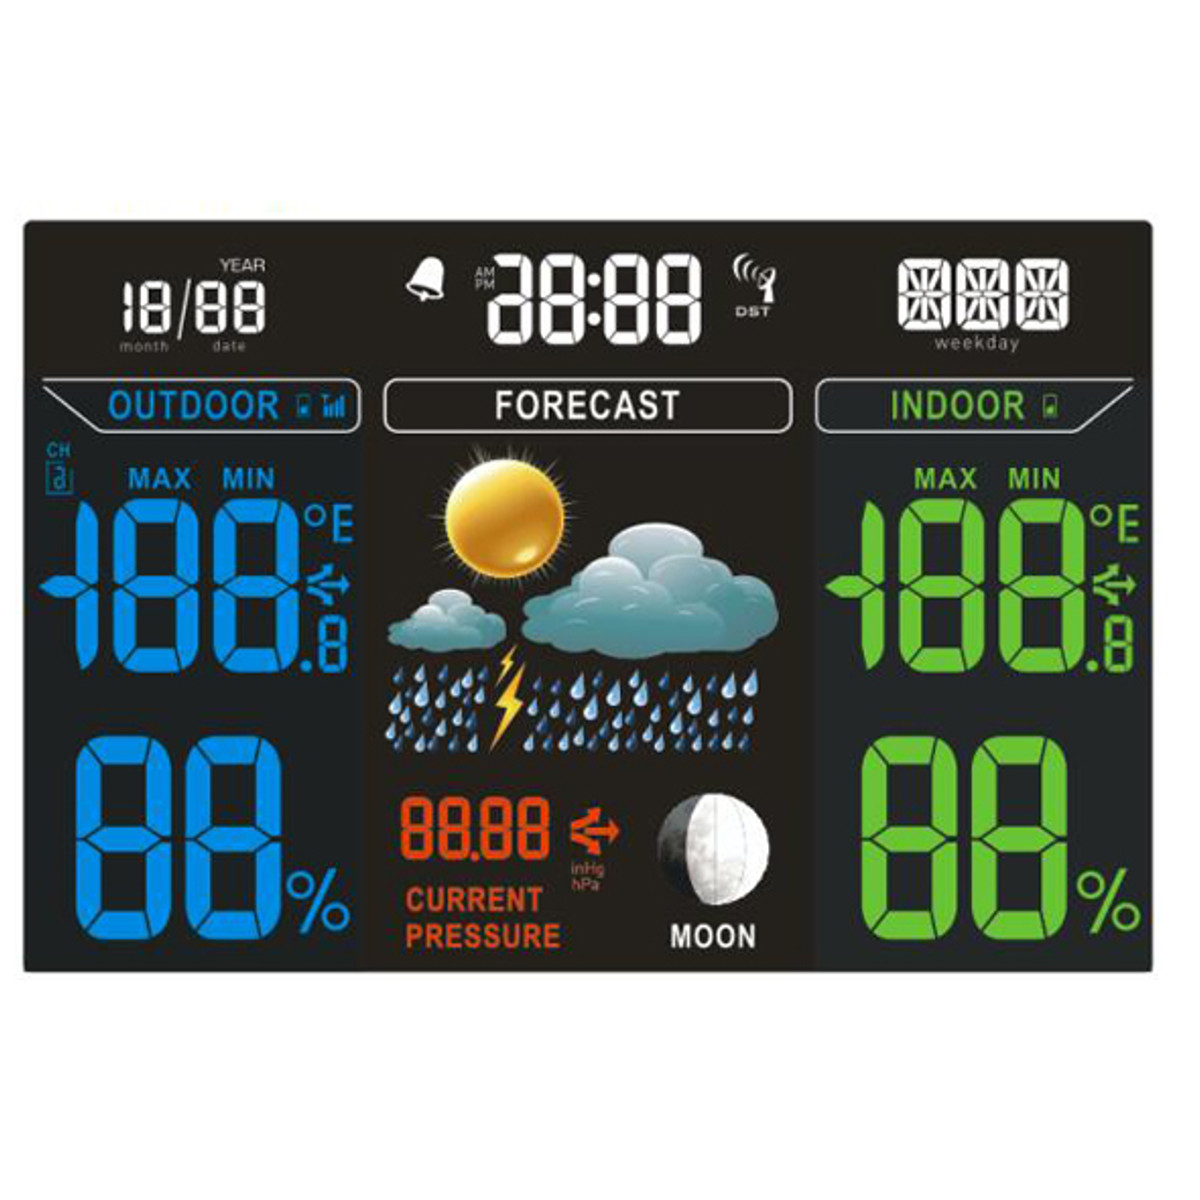 TS-70 Digital Wireless Weather Station Temperature Tester Thermometer Humidity Monitor with 2 Receivers